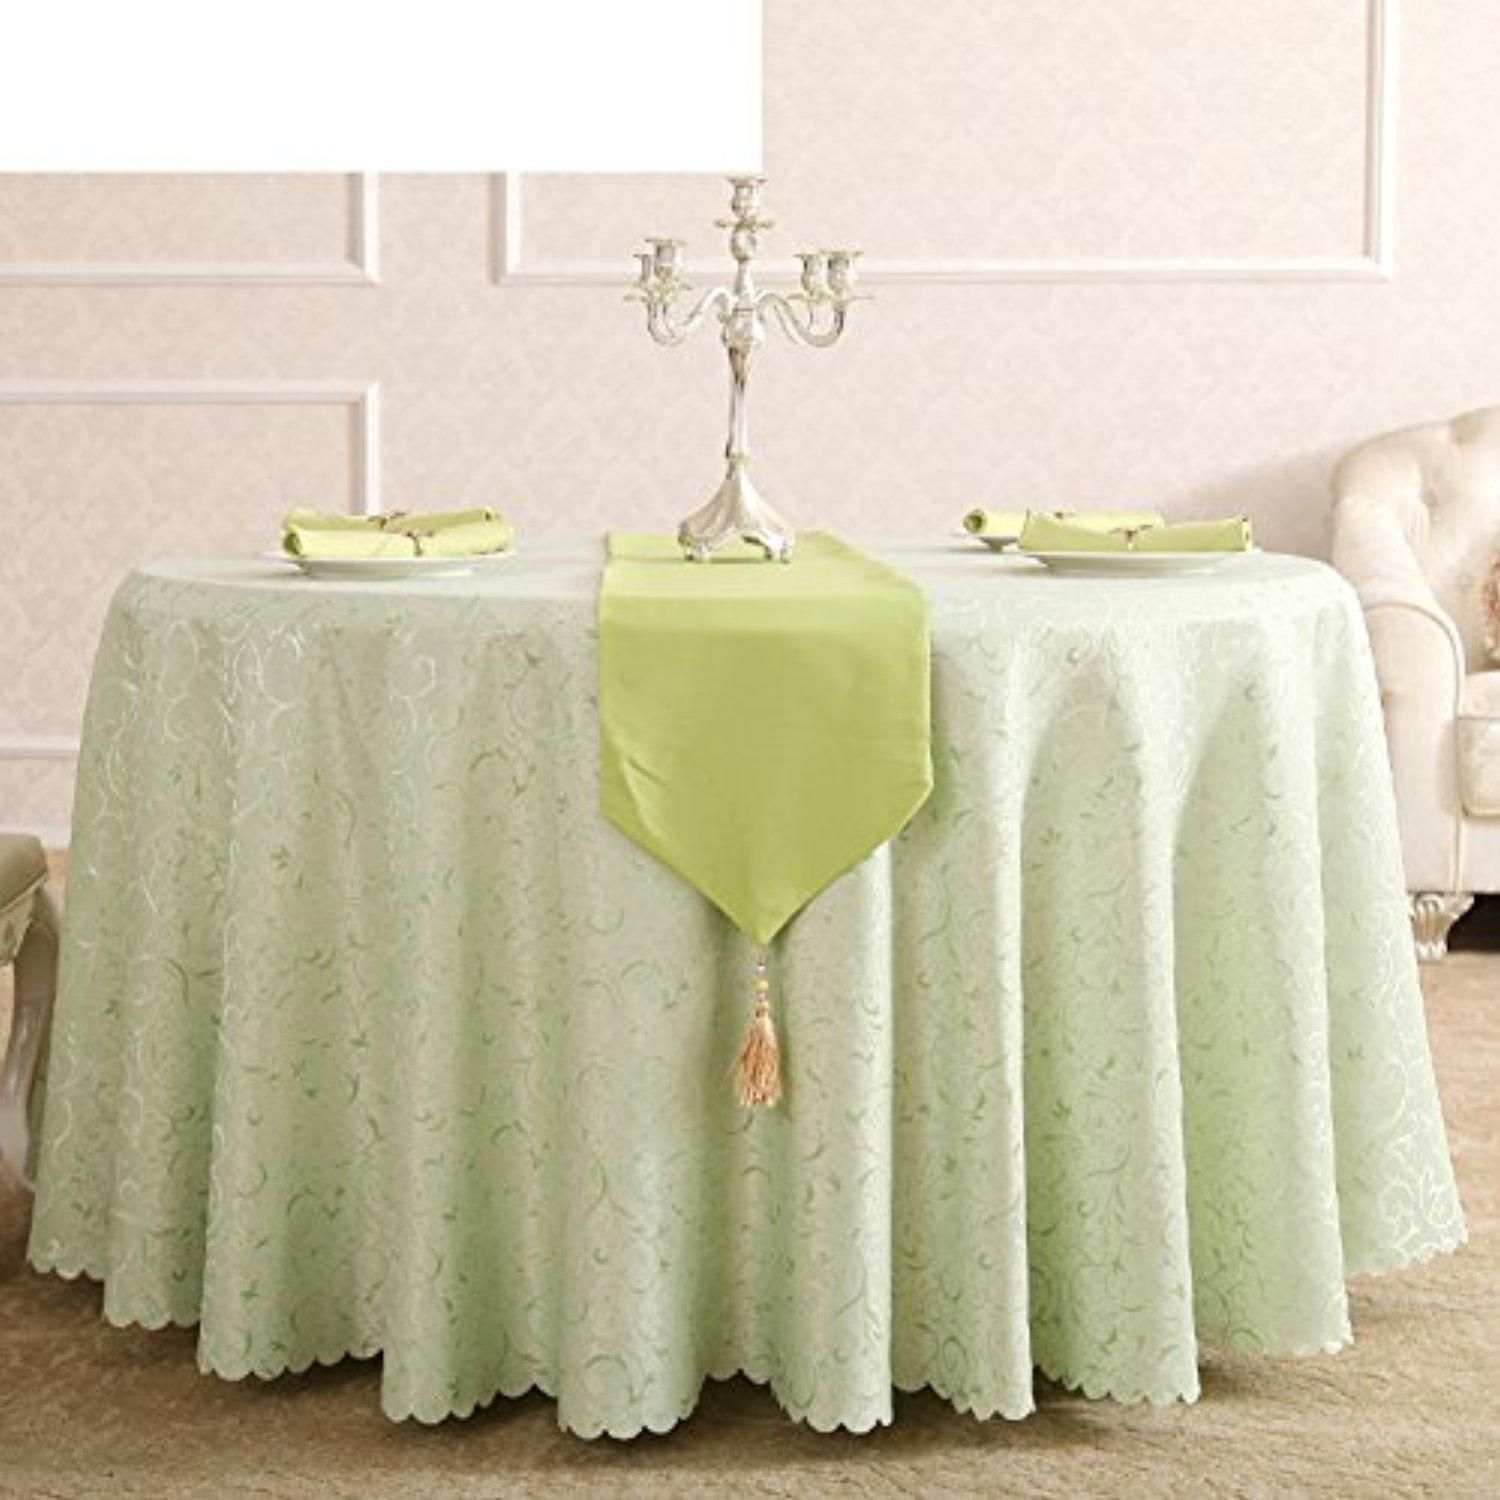 Hotel round table cloth Continental restaurant table linen